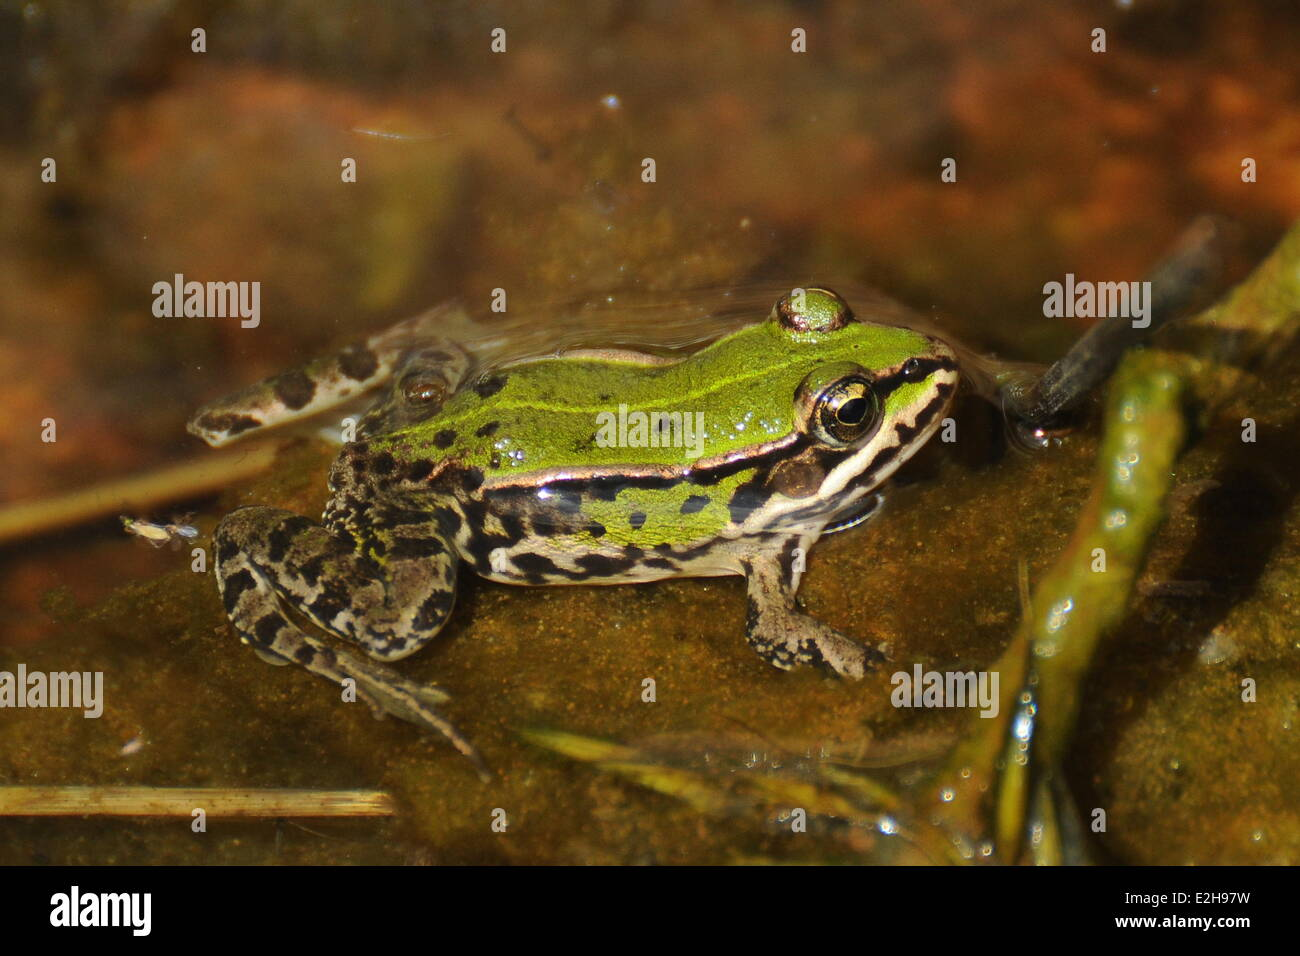 Baby Frogs Stock Photos & Baby Frogs Stock Images - Page 3 - Alamy